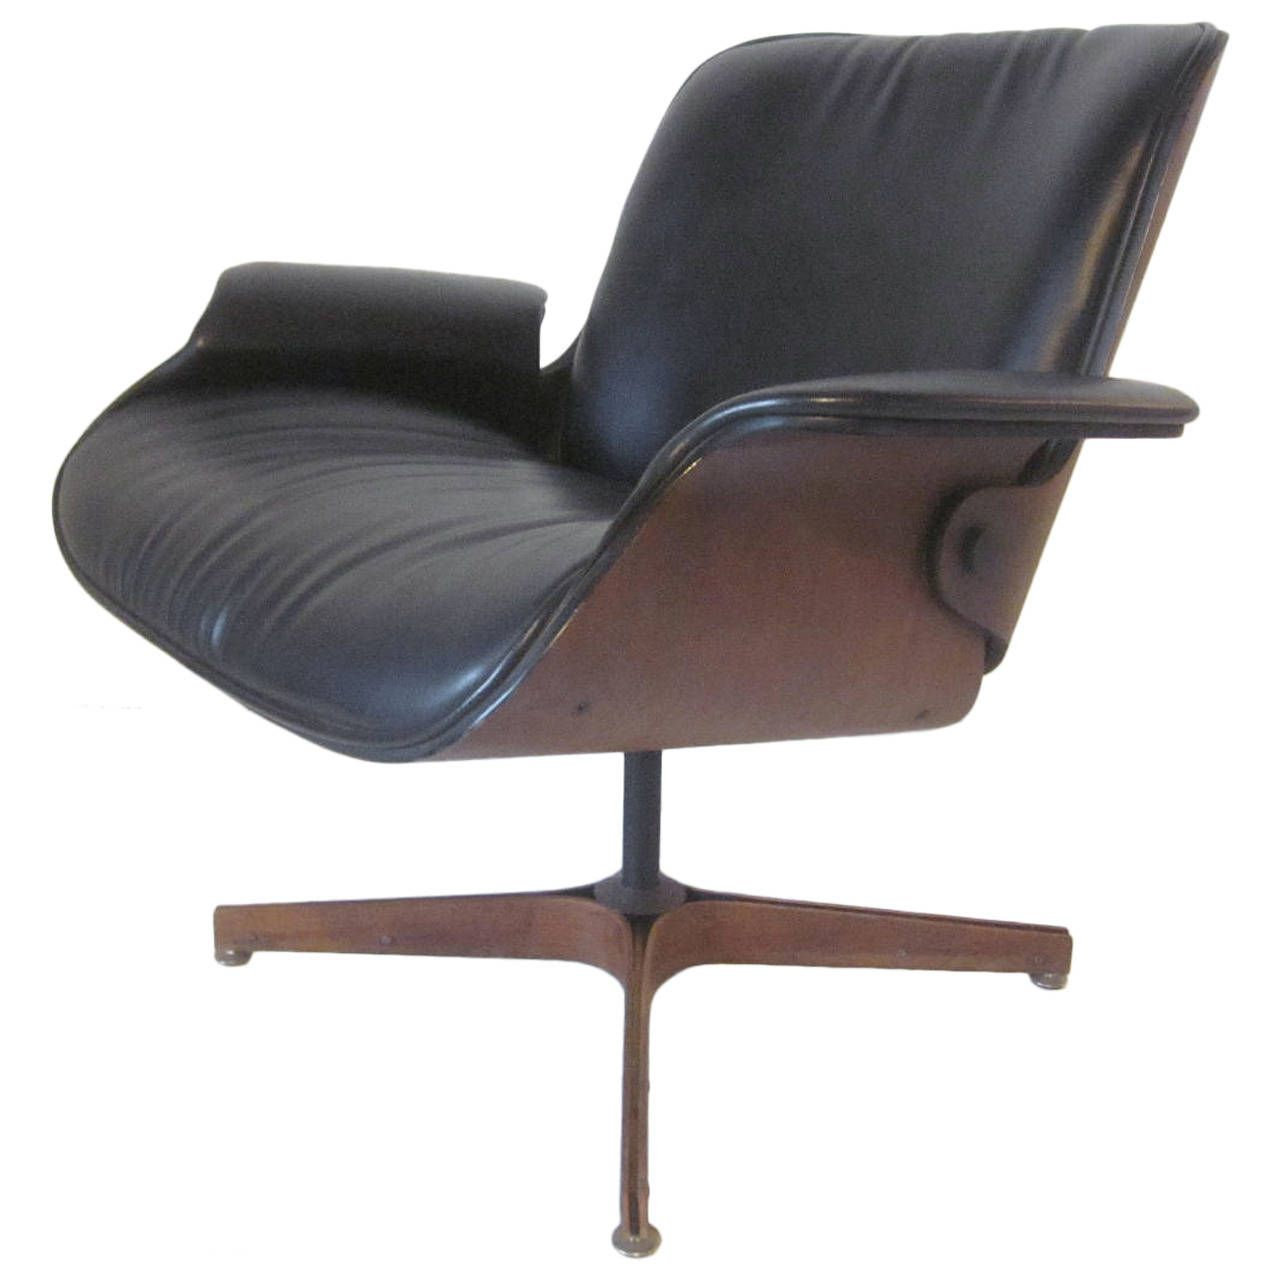 George Mulhauser, Plycraft Low Lounge Chair